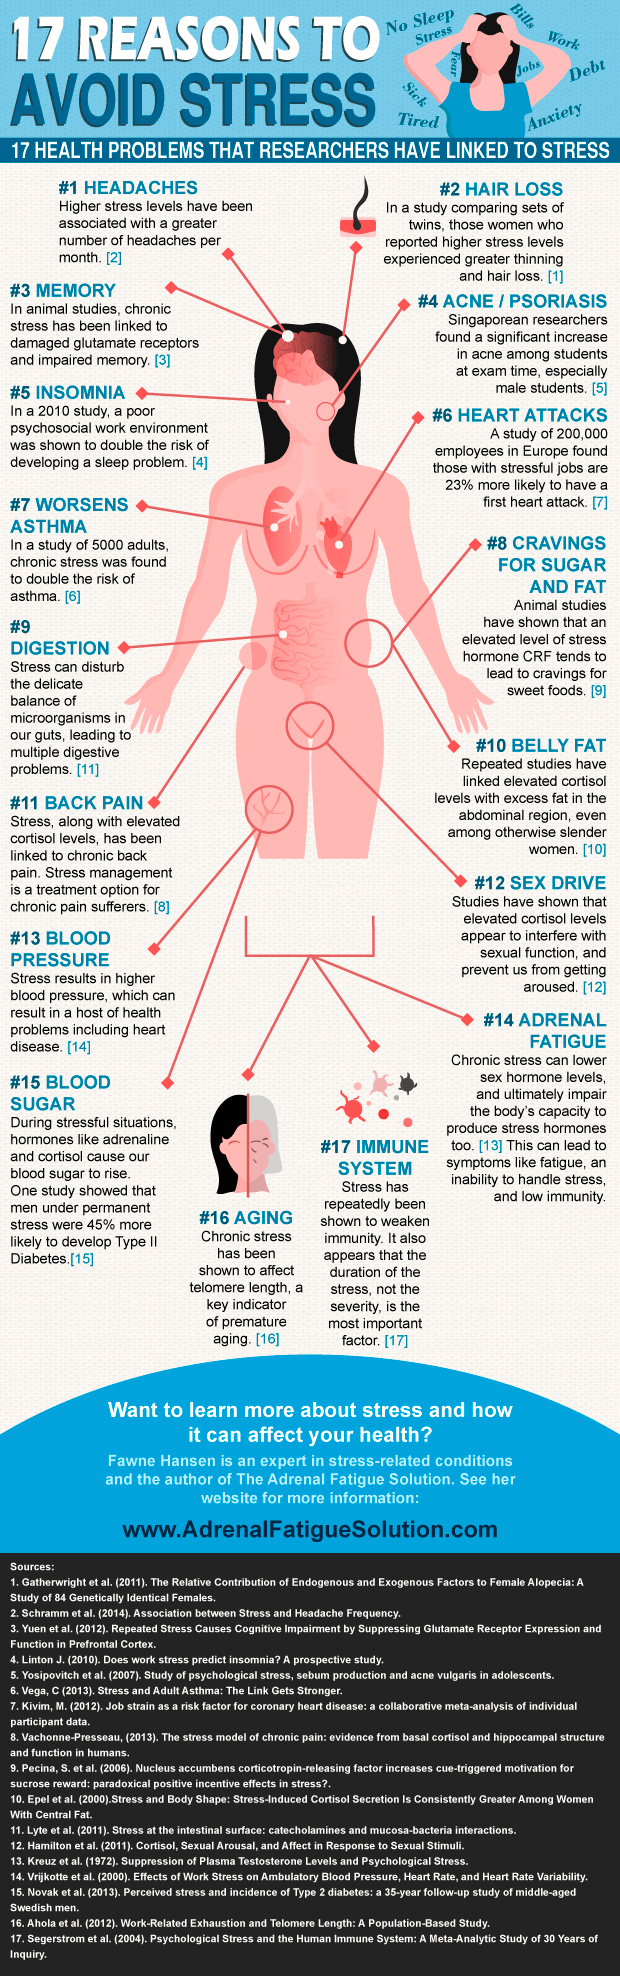 17-reasons-avoid-stress-infographic